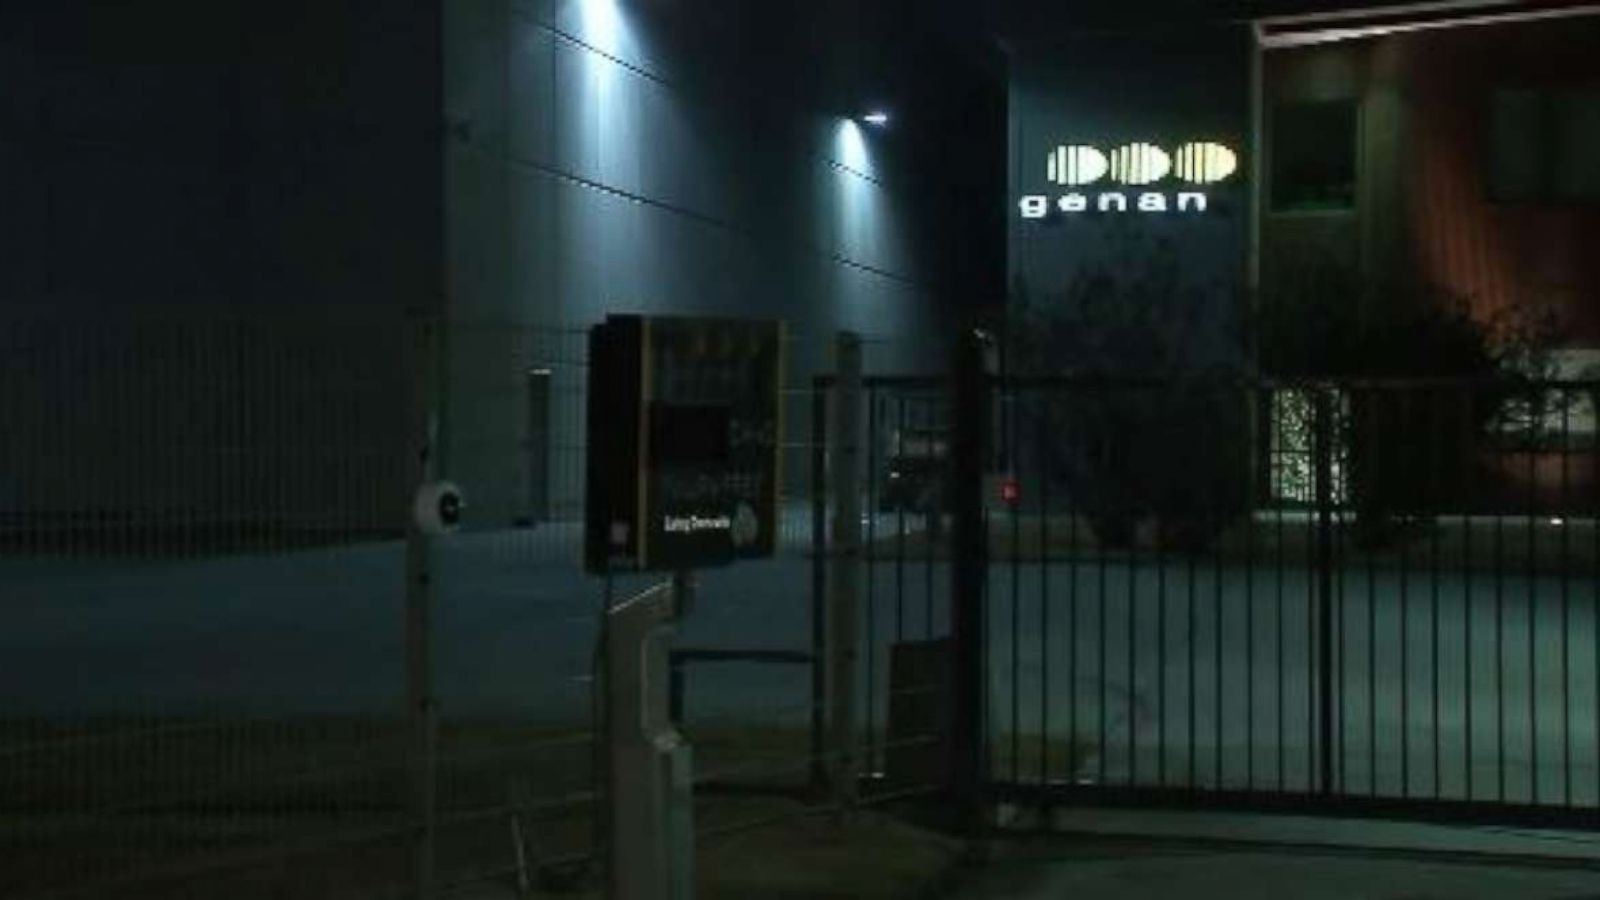 Worker dies after falling into tire shredder at recycling